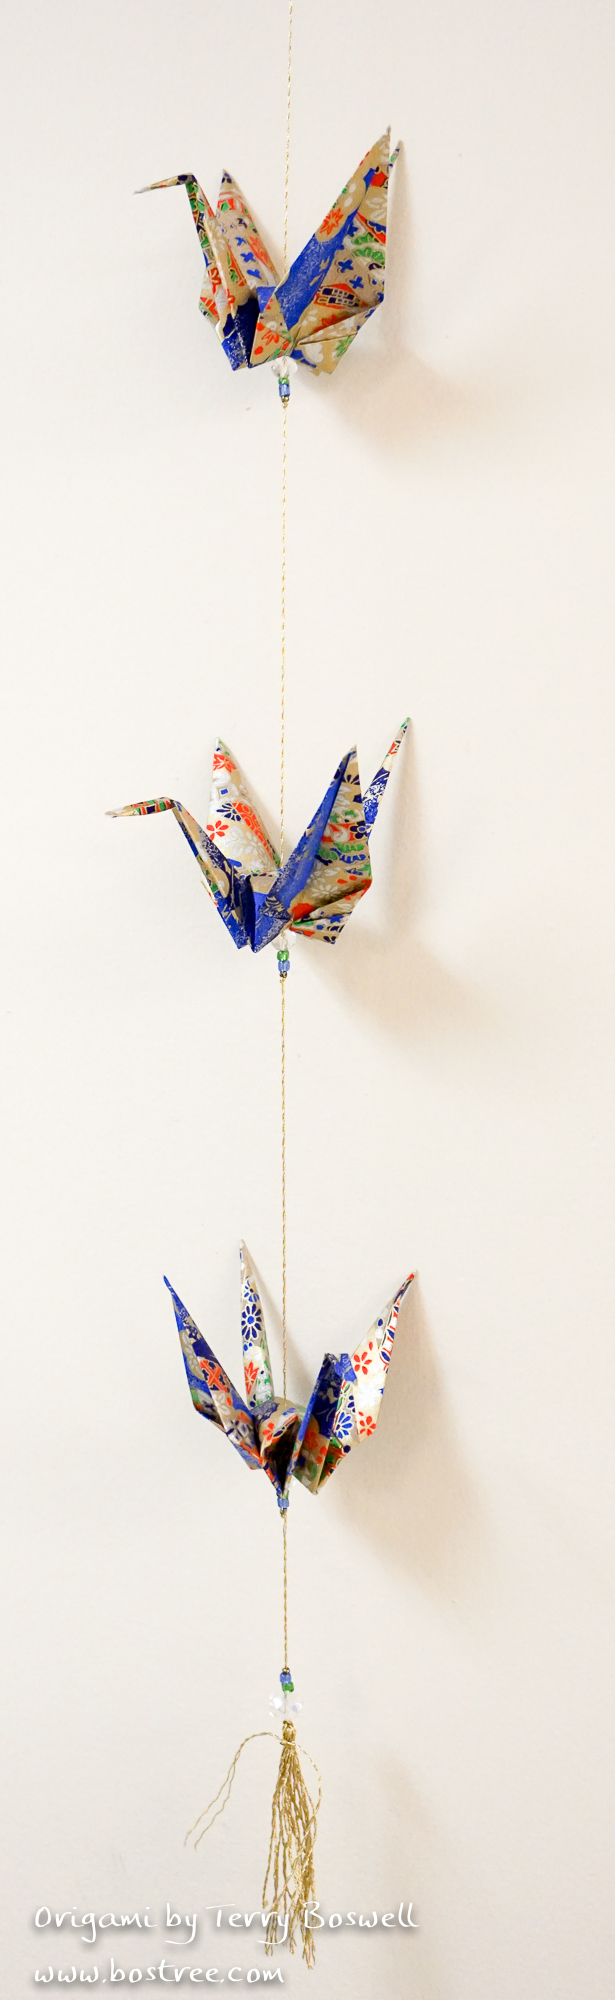 Three Crane Origami Mobile Blue Gold Red Origami Shop Online